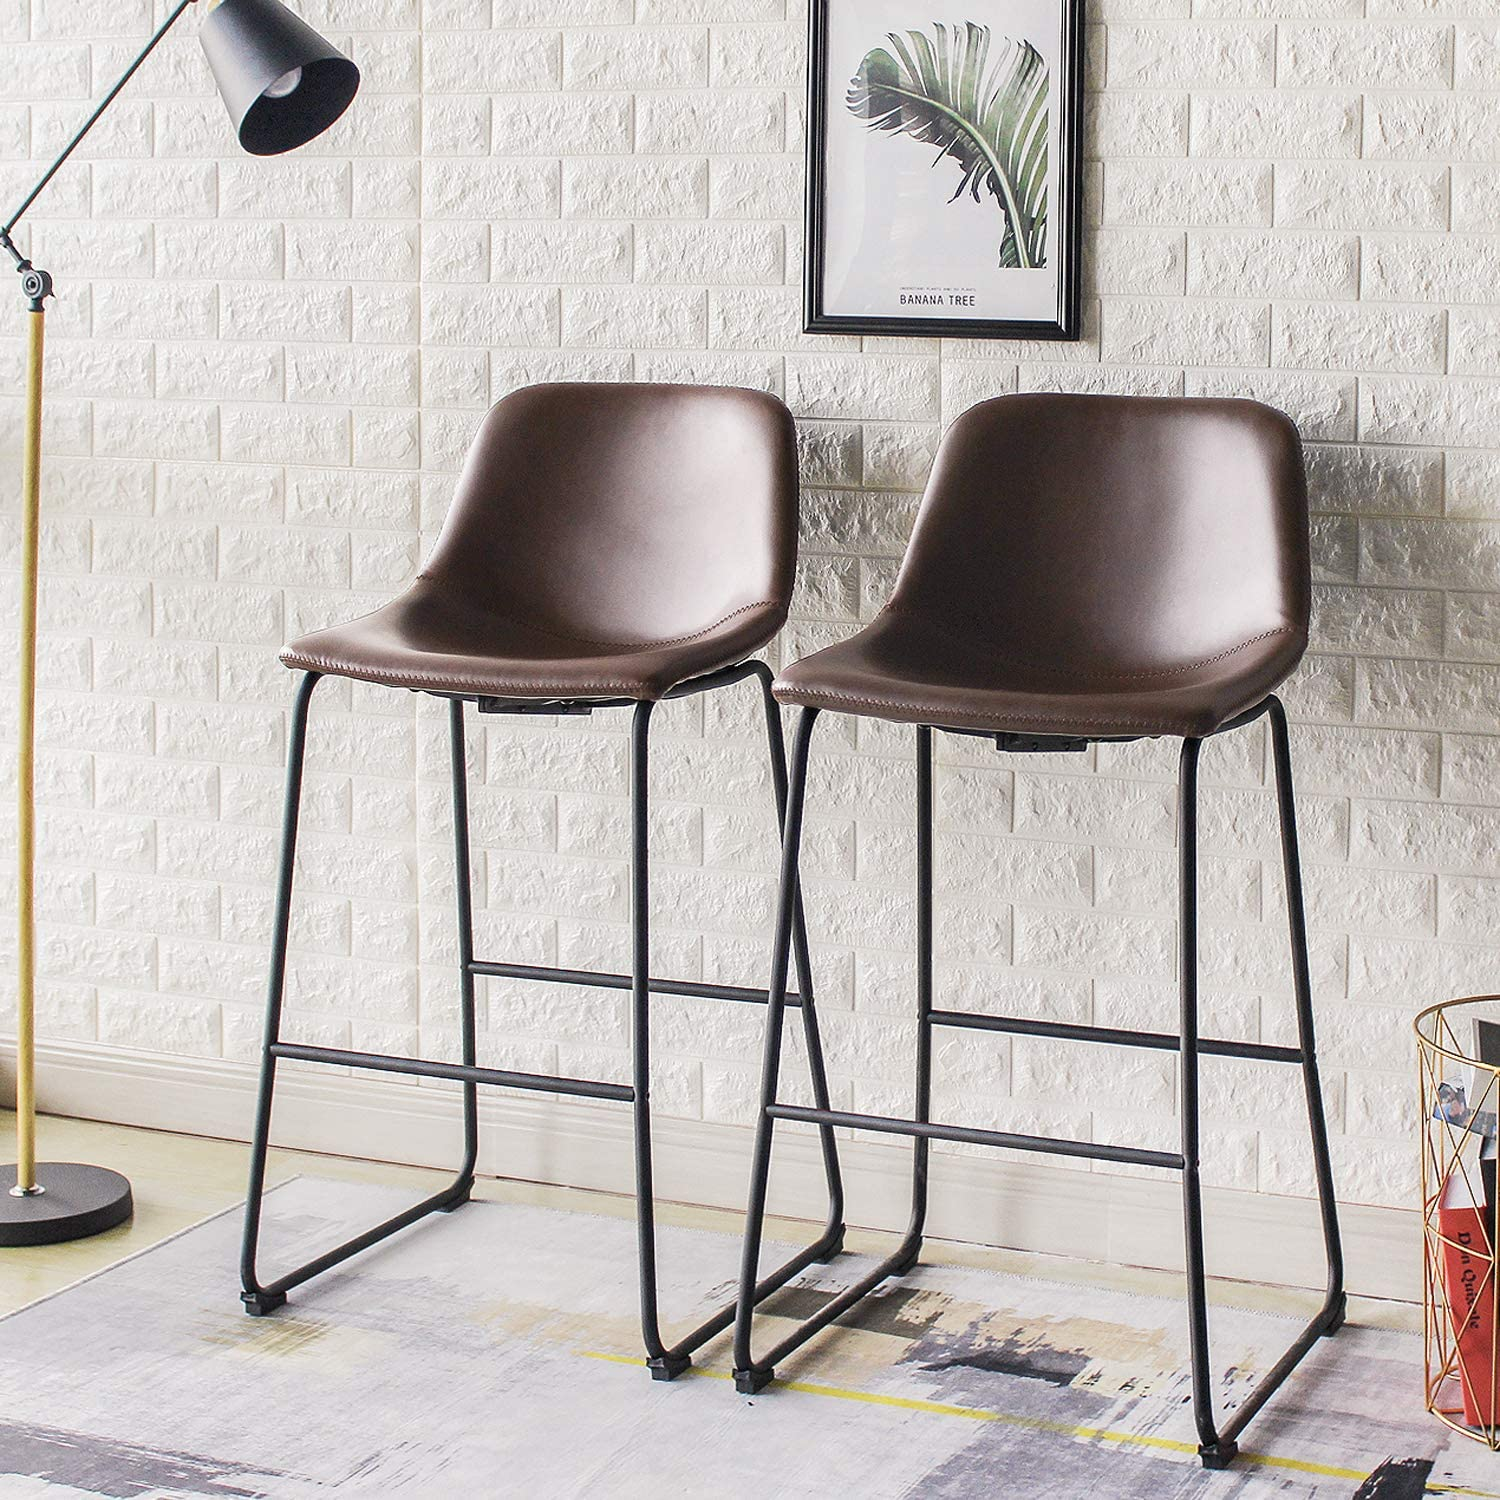 Amazon Com Rfiver Pu Leather Bar Stools Rustic Barstools With Back And Footrest Kitchen Bar Height Stool Chairs Set Of 2 Brown Kitchen Dining